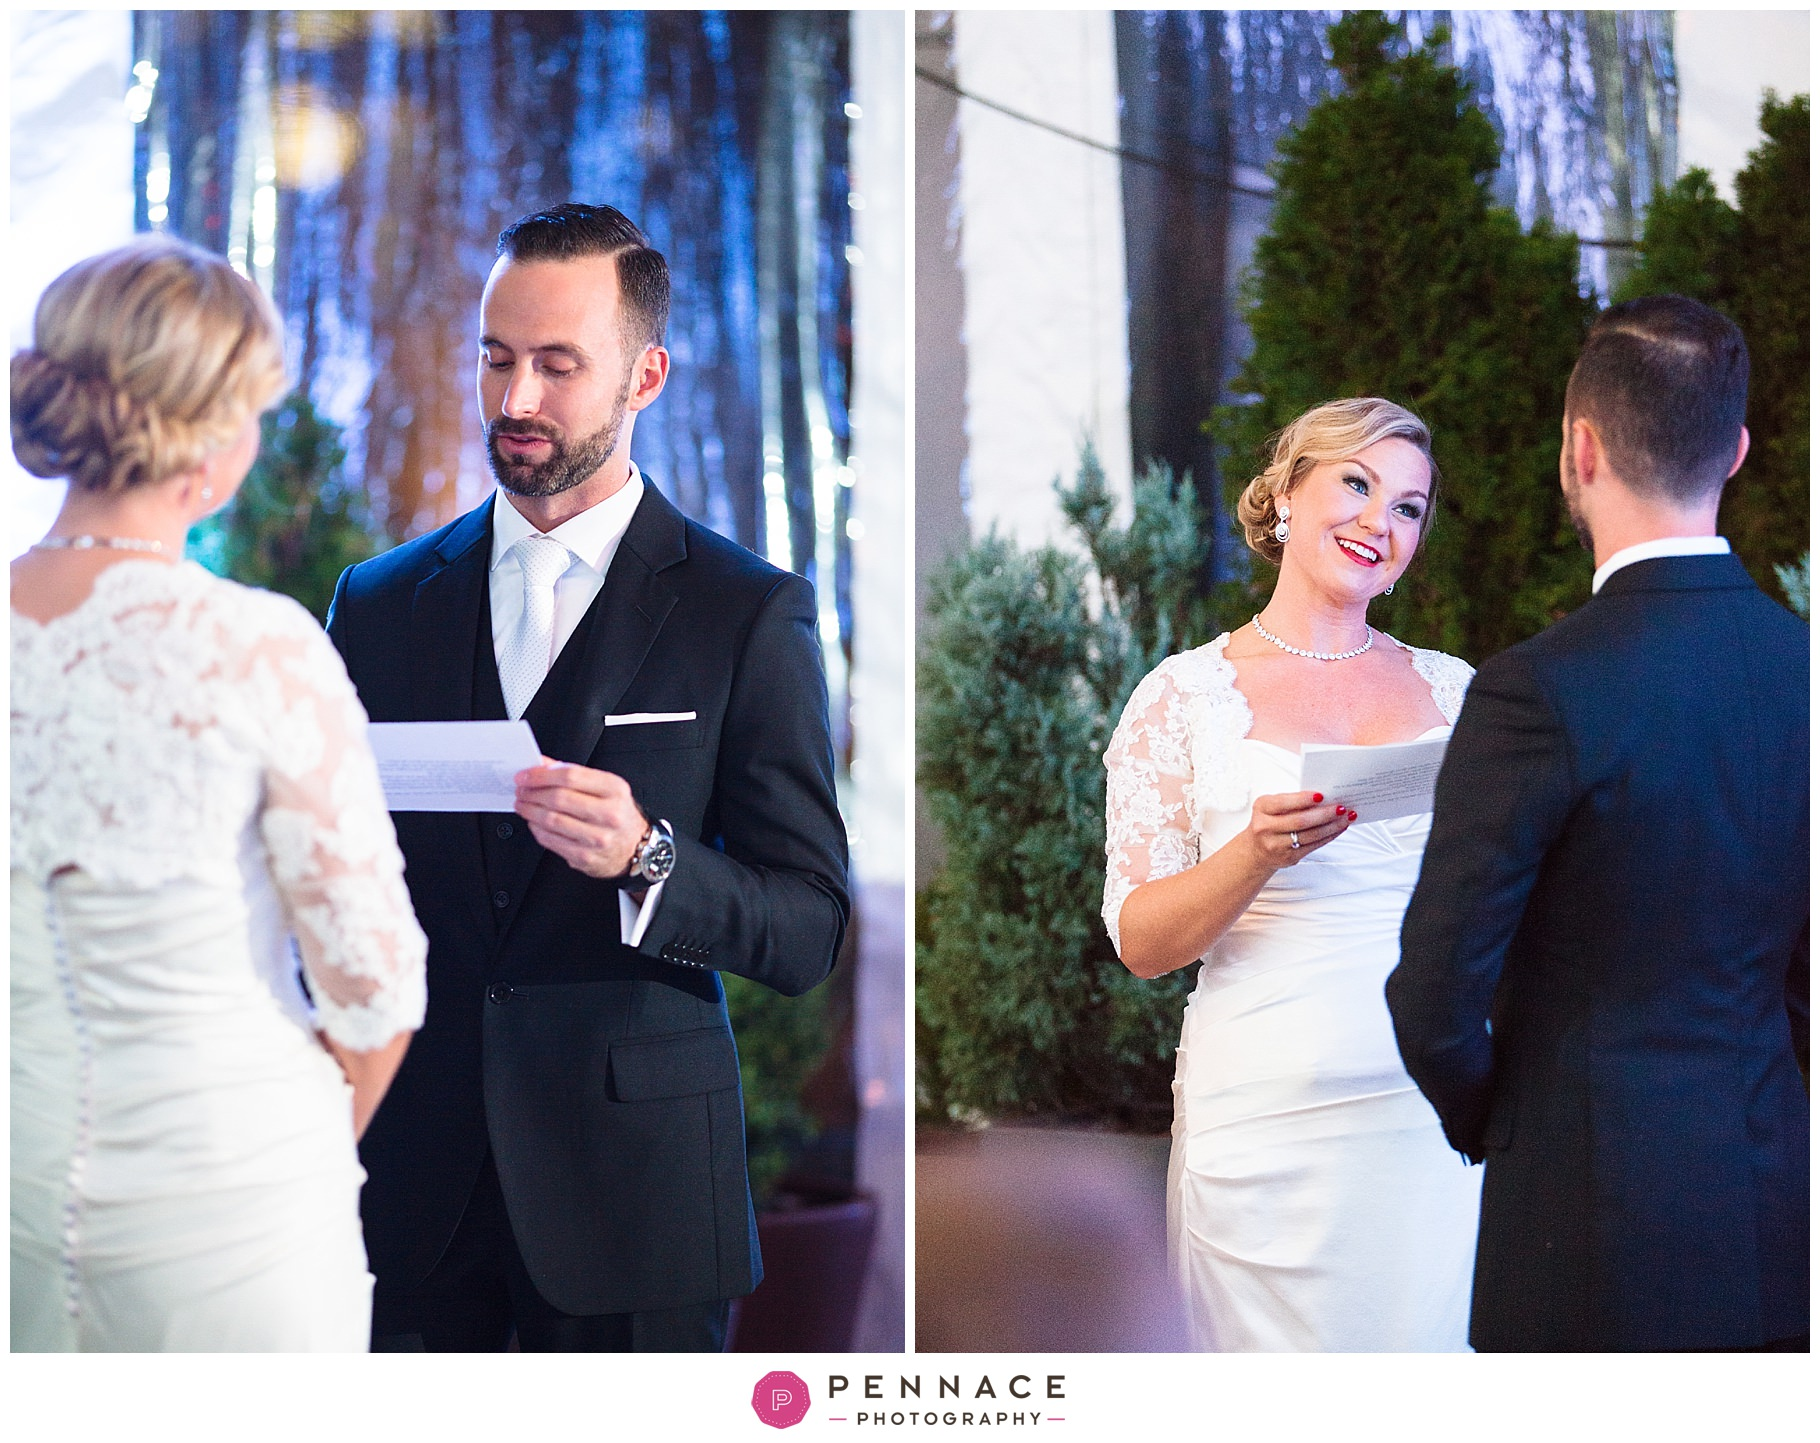 851 Avenue of the Americas Wedding